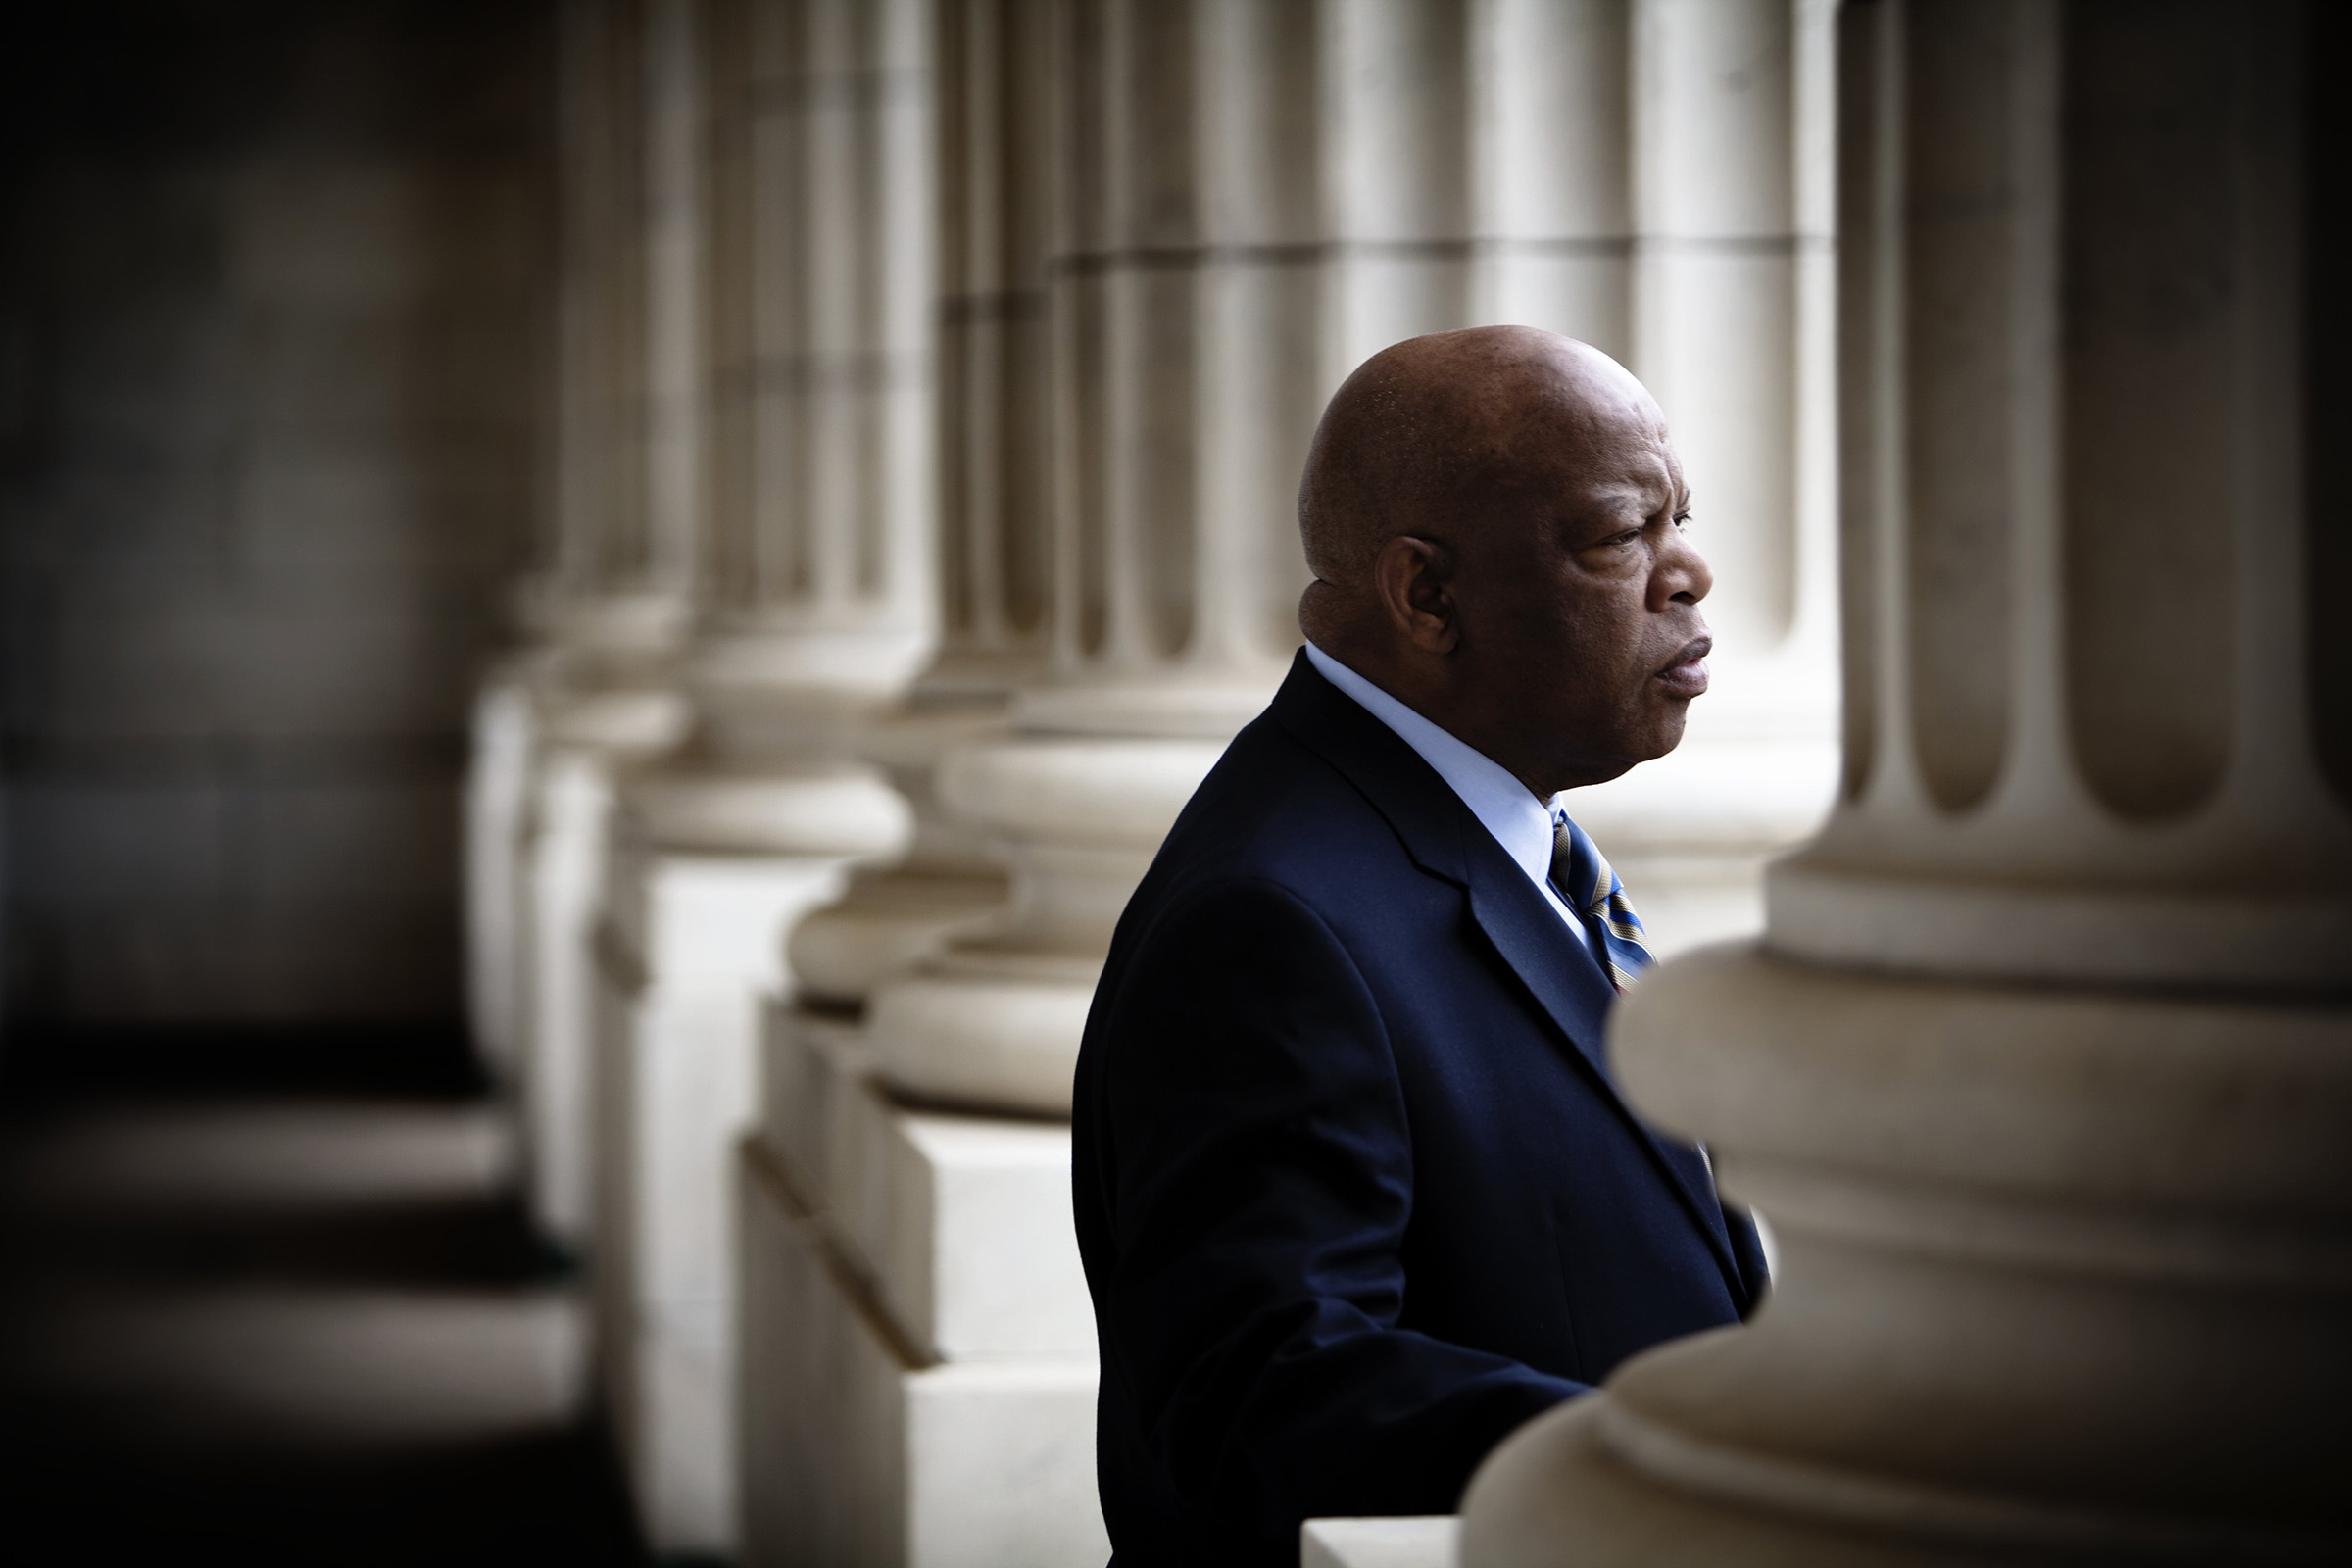 Congressman John Lewis (D-GA) is photographed in his offices in the Canon House office building in Washington, D.C., on March 17, 2009.